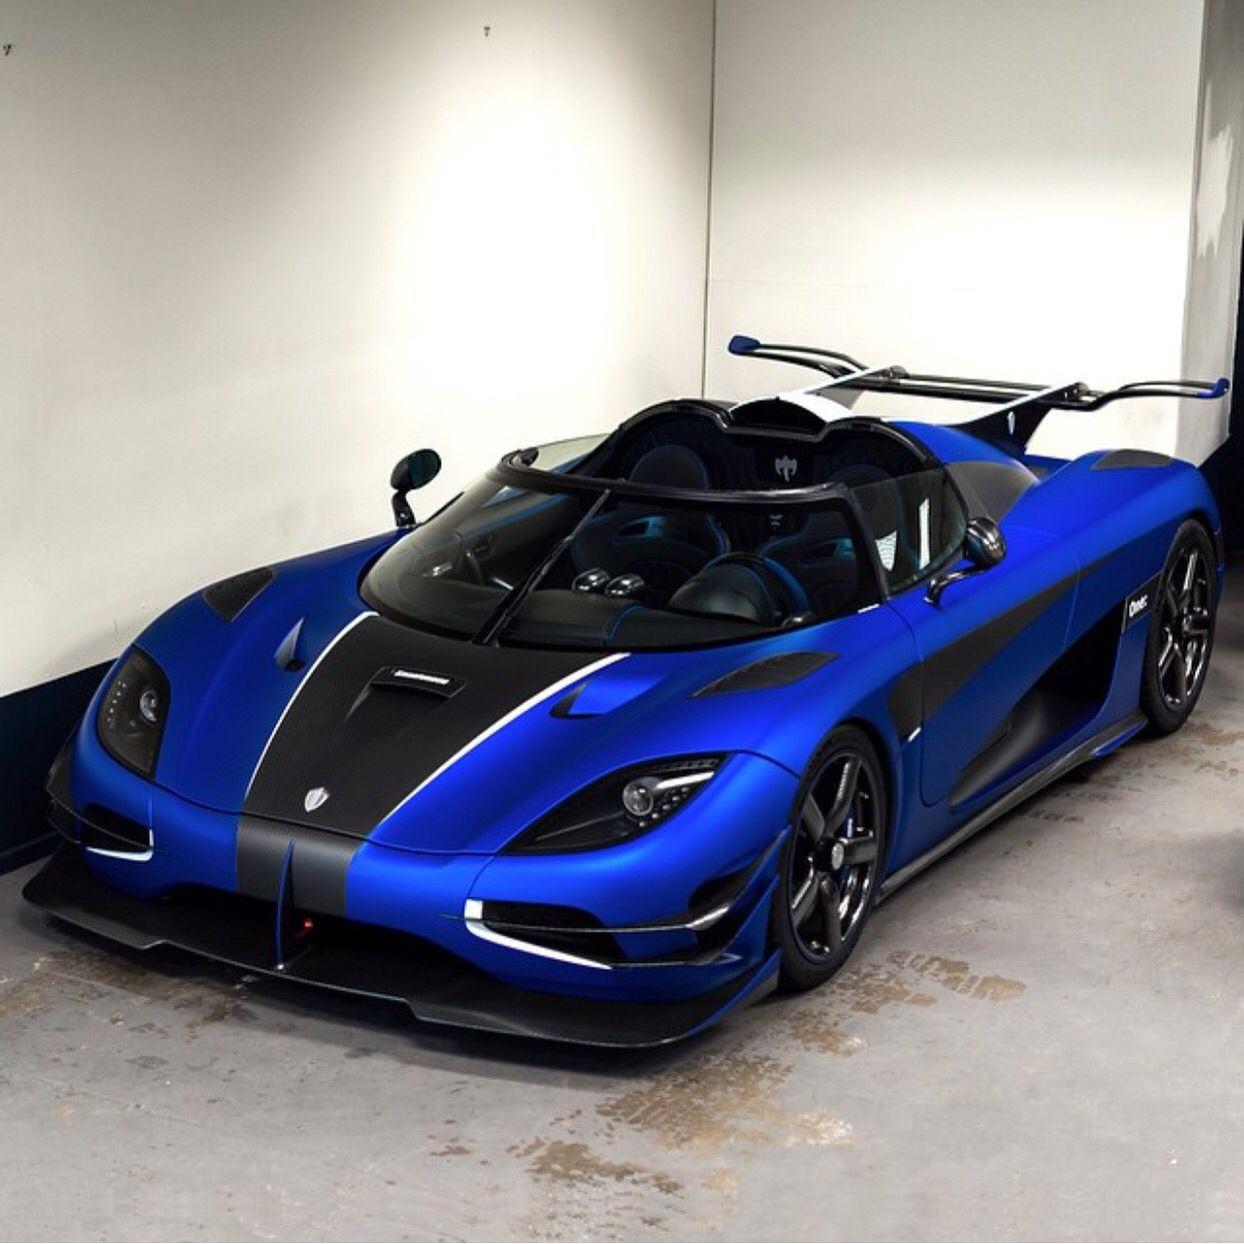 Exotic Sports Cars Koenigsegg: Koenigsegg One:1 Painted In Satin Blue W/ Exposed Matte